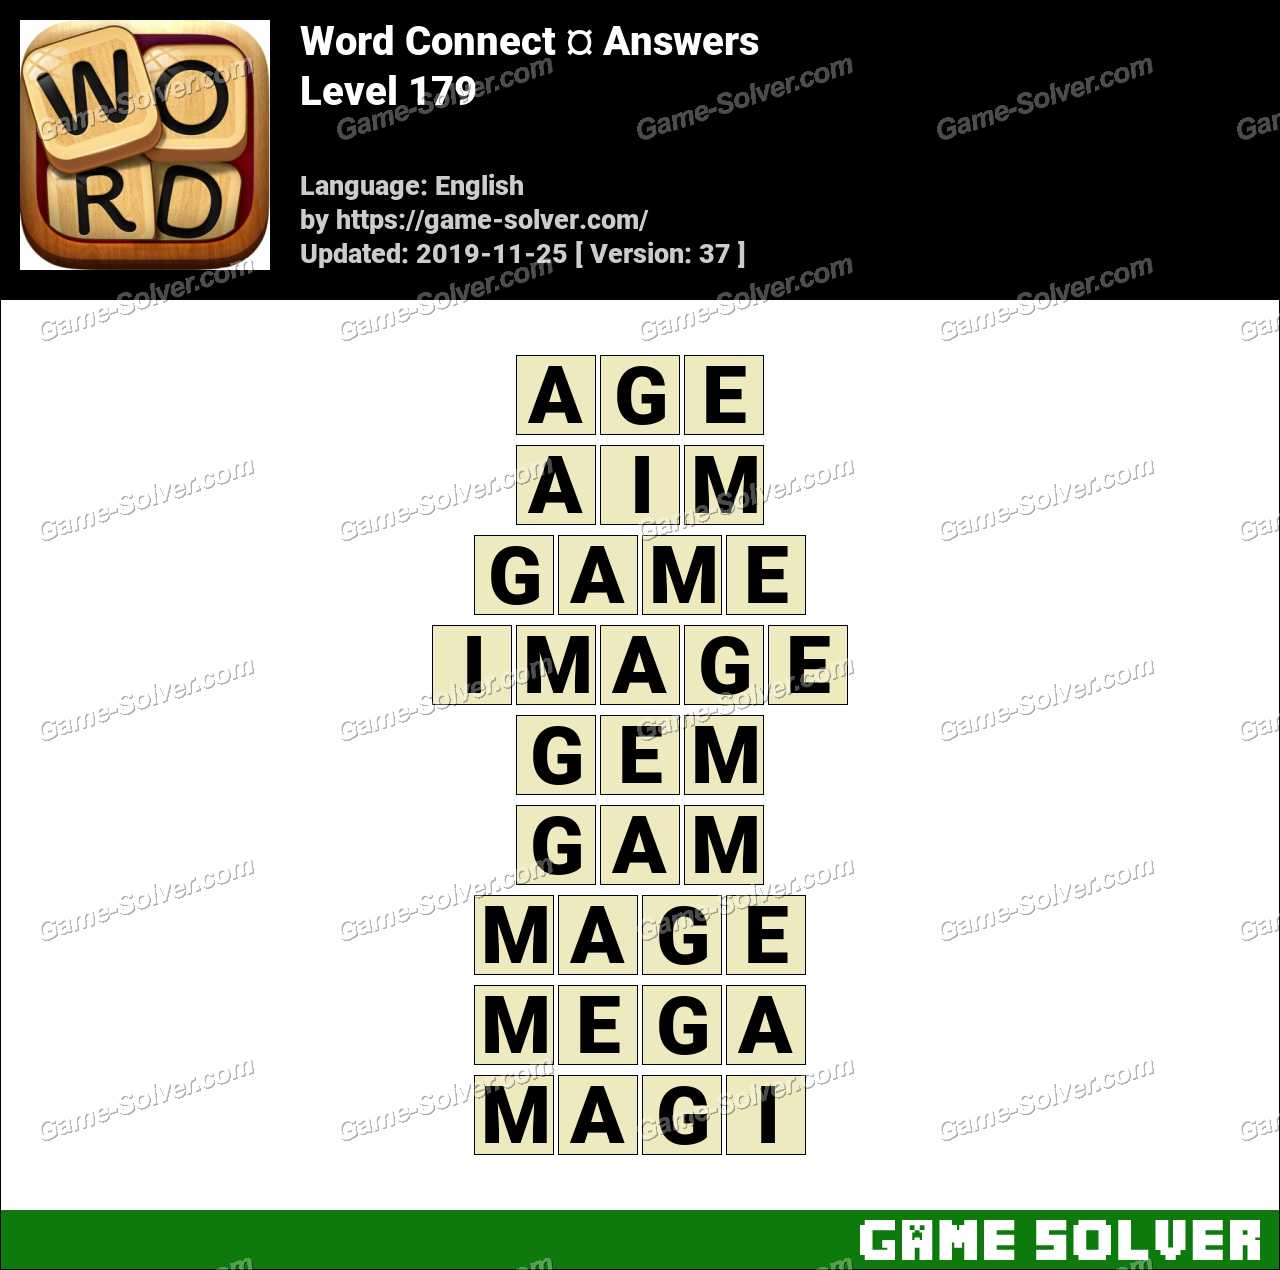 Word Connect Level 179 Answers